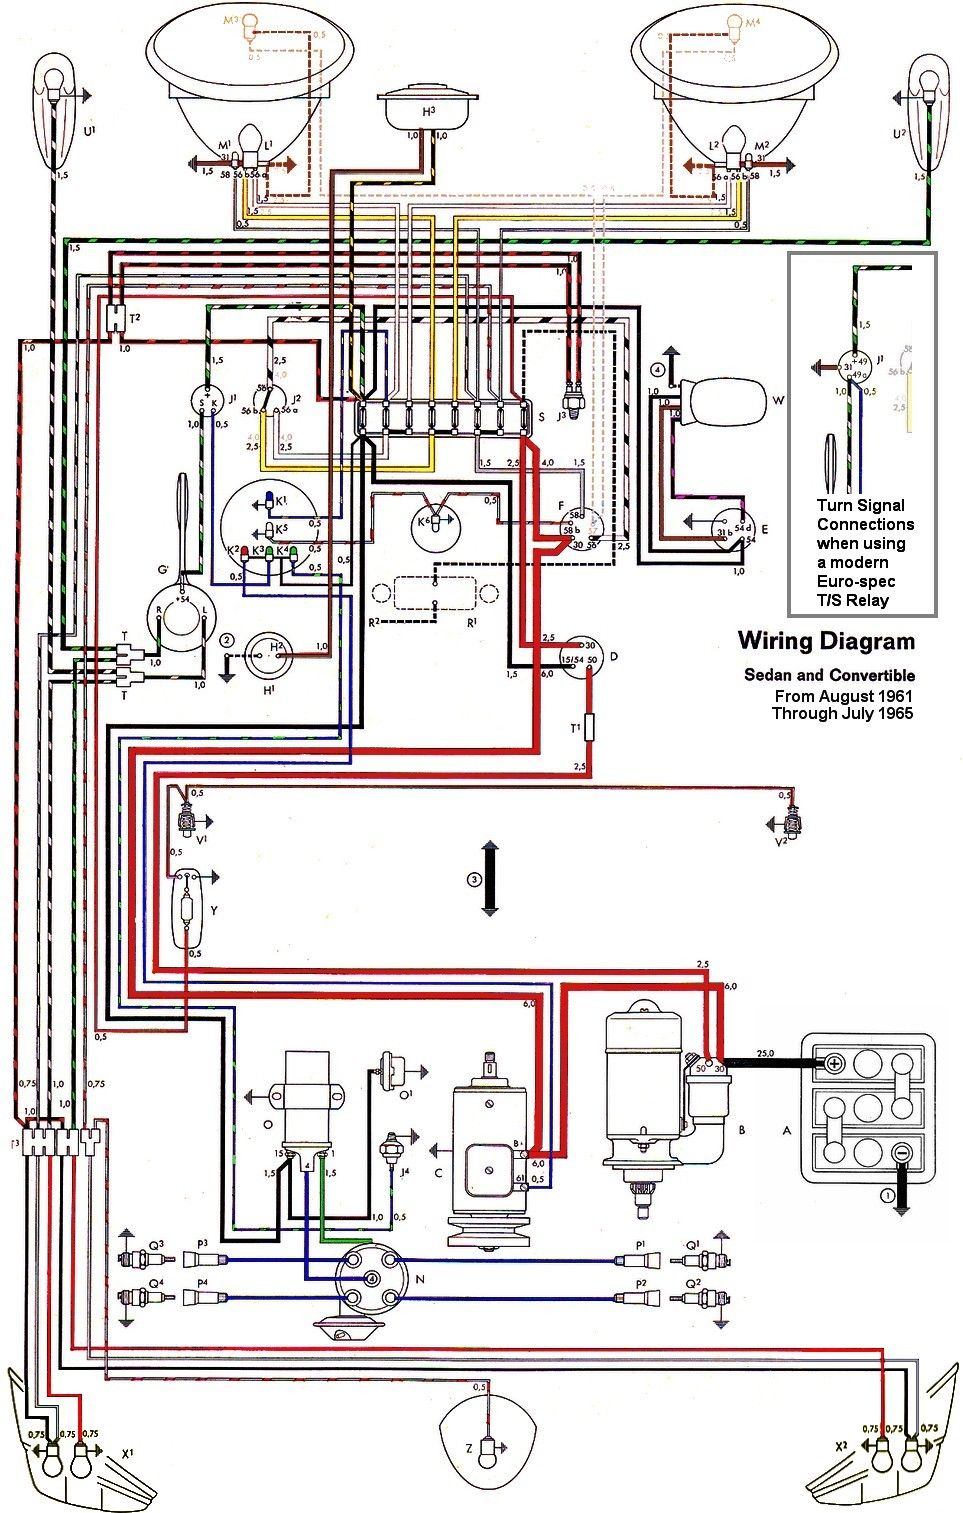 2235472c26e9b61112a110100d6ddea3 wiring diagram in color 1964 vw bug, beetle, convertible the vw beetle wiring harness routing at virtualis.co